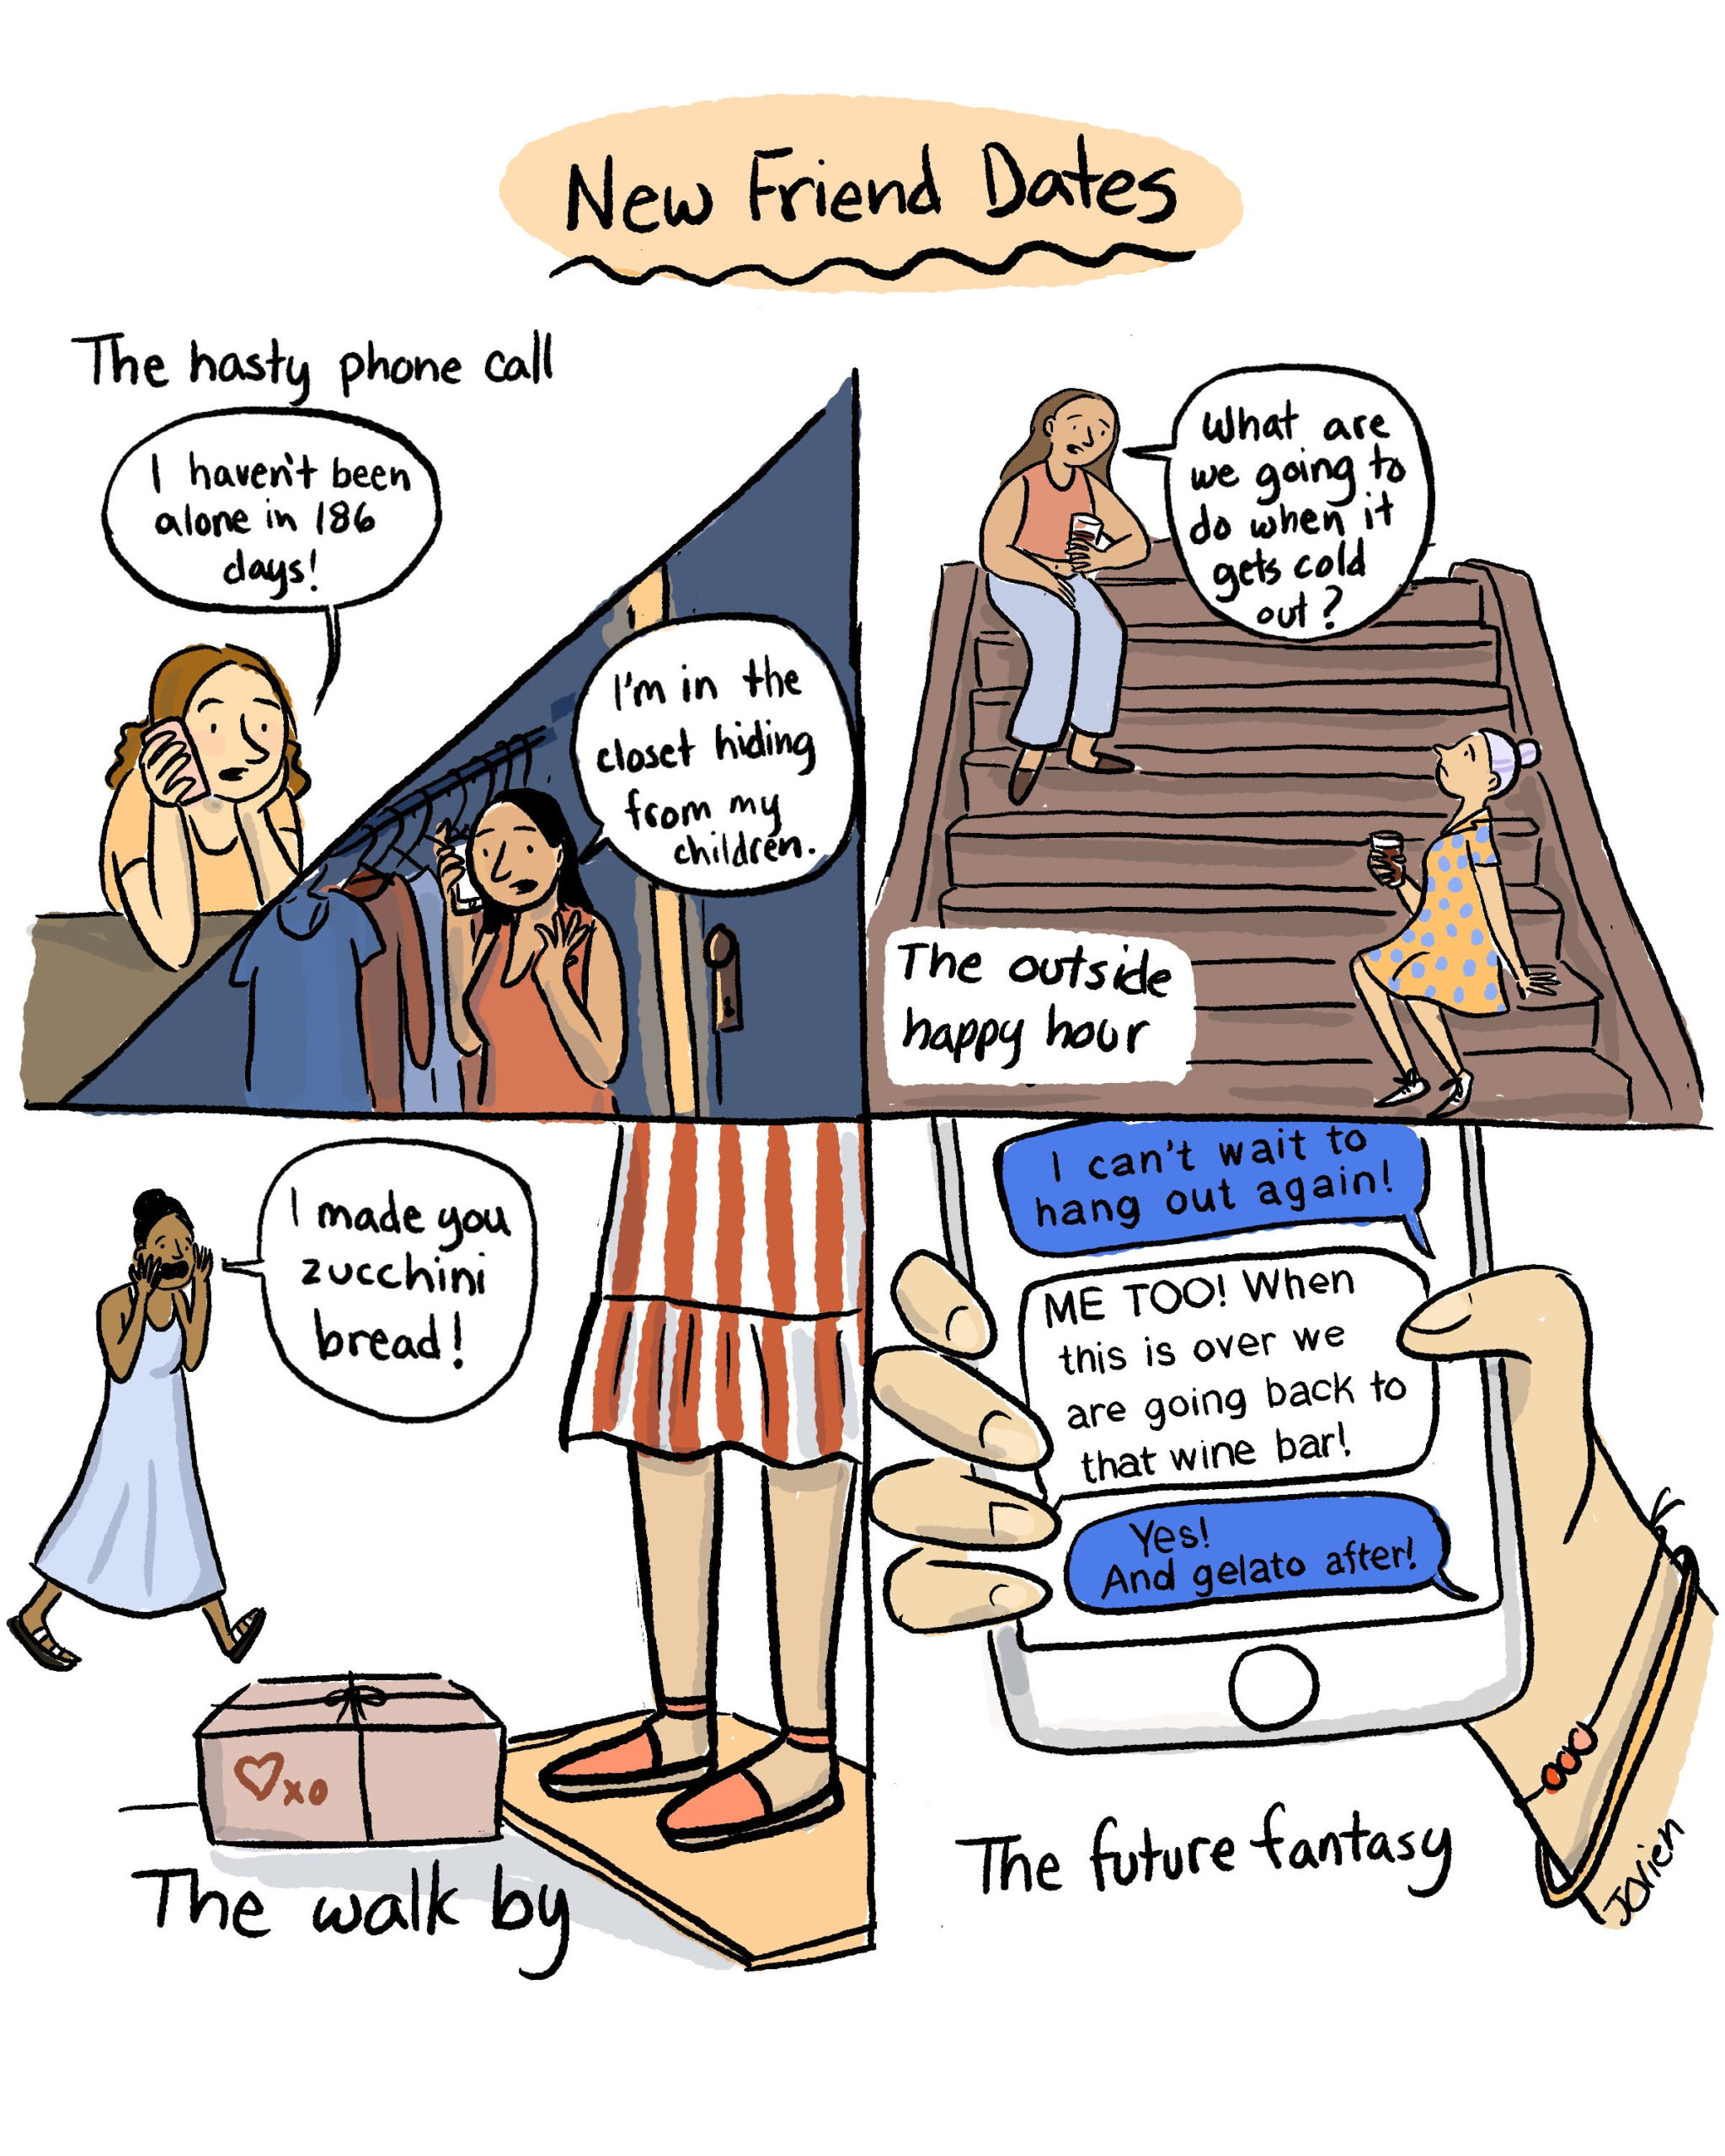 a friend comic by Jessica olien